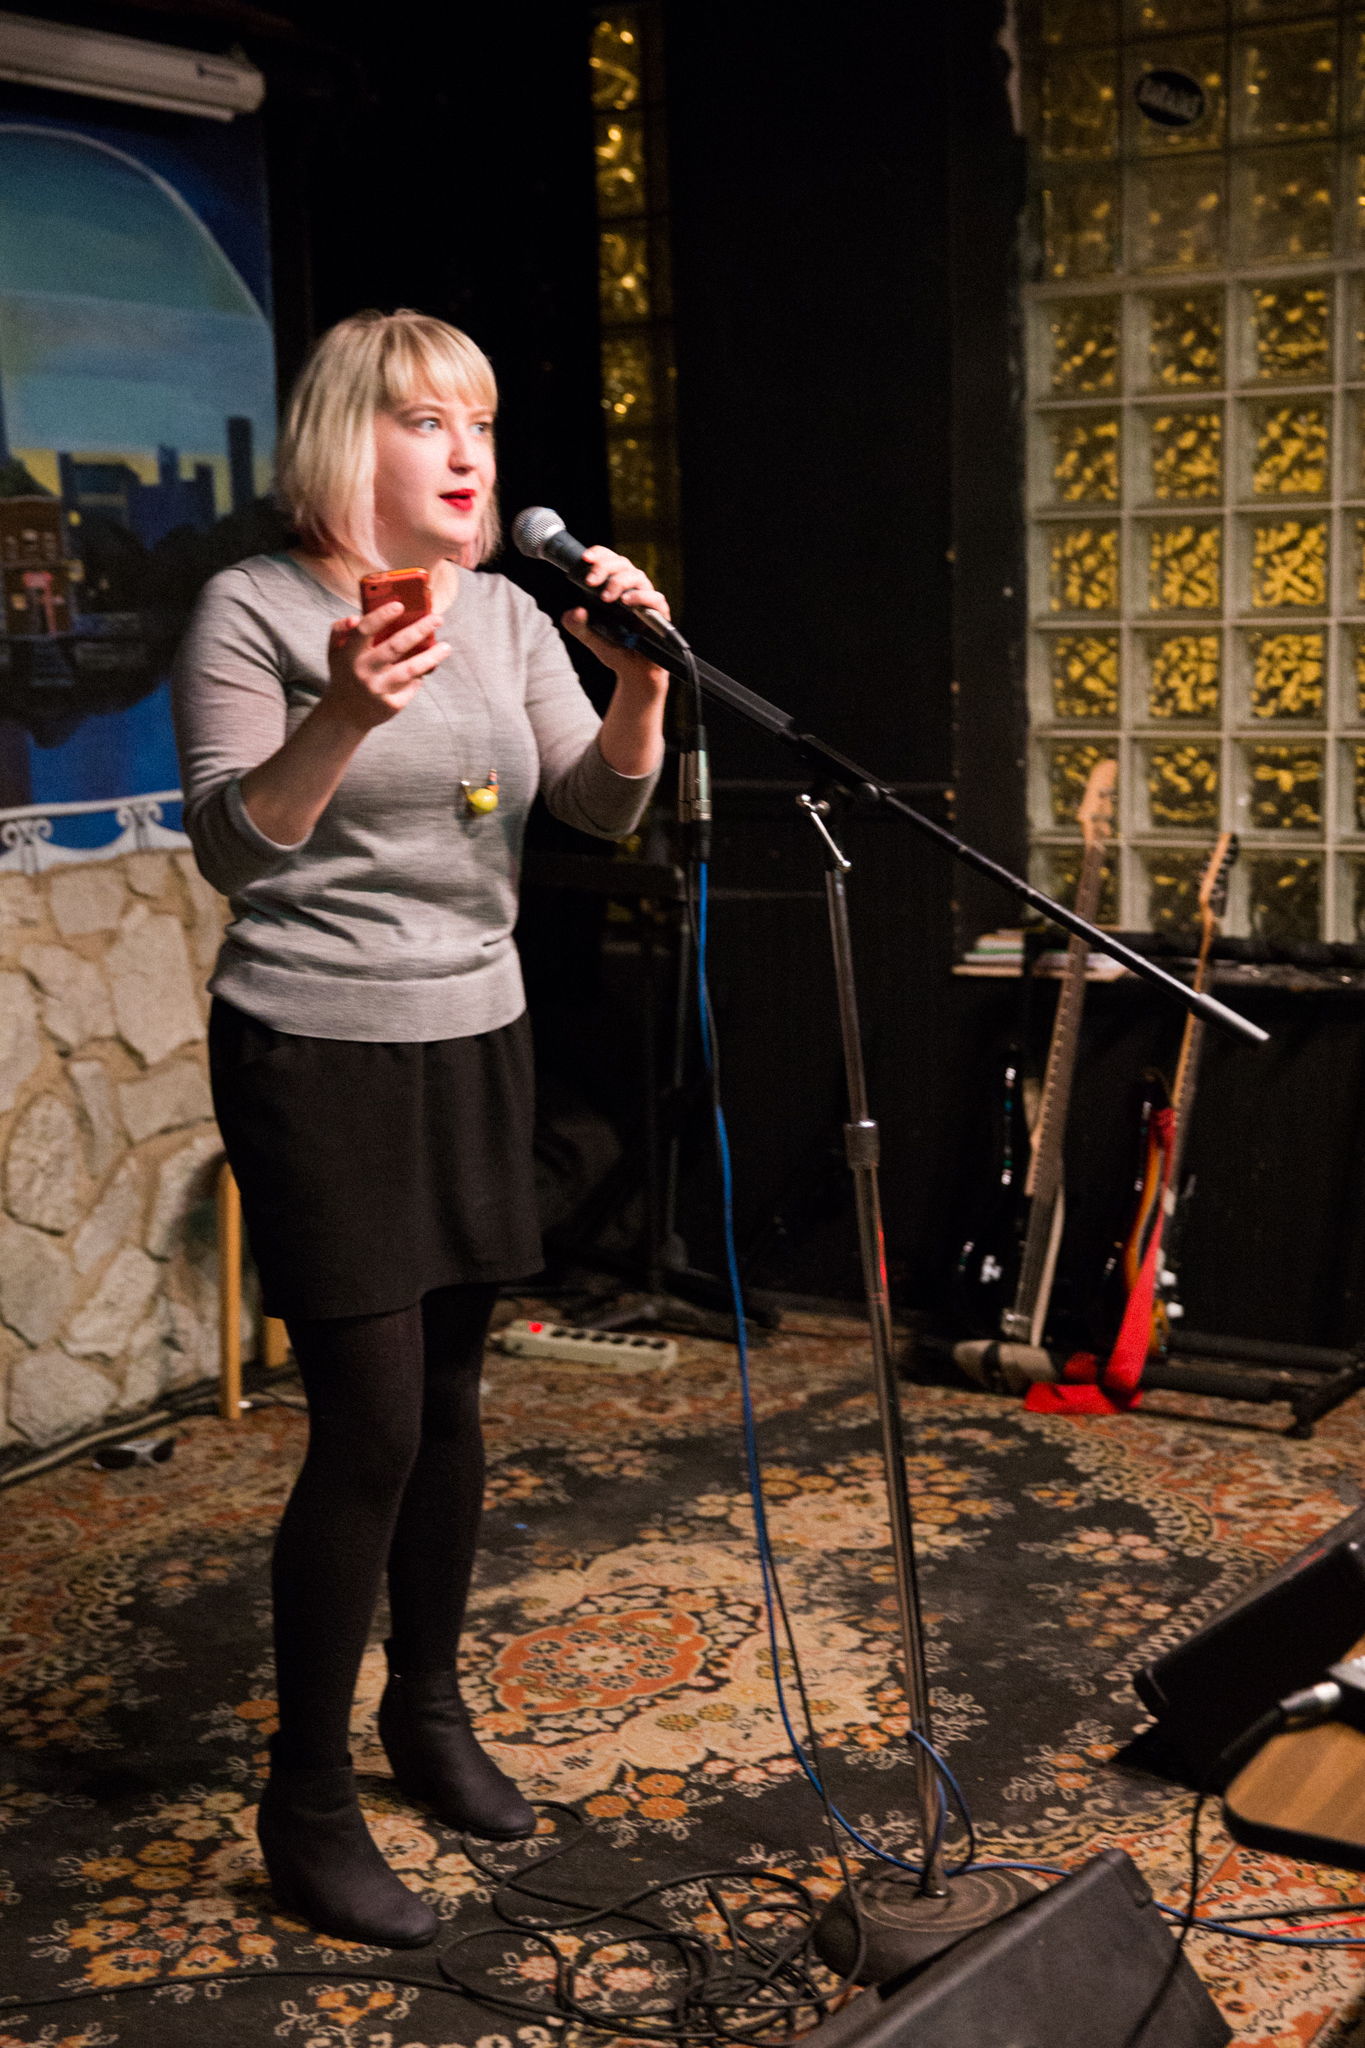 Image: Photo of Rosamund Lannin performing on-stage at Miss Spoken at the Gallery Cabaret. Lannin looks out toward the audience (not visible) and speaks into the microphone, while holding a phone in one hand. Lannin wears a grey shirt, black skirt, black leggings, and black boots, and stands on a multi-colored rug. Painted on the stage wall behind the reader is a scene showing Chicago's skyline, as if viewed from behind a stone wall. Also visible in the background are two electric guitars, set to lean toward a black wall with glass-brick windows. Photo by [Photographer]. Courtesy of Miss Spoken.